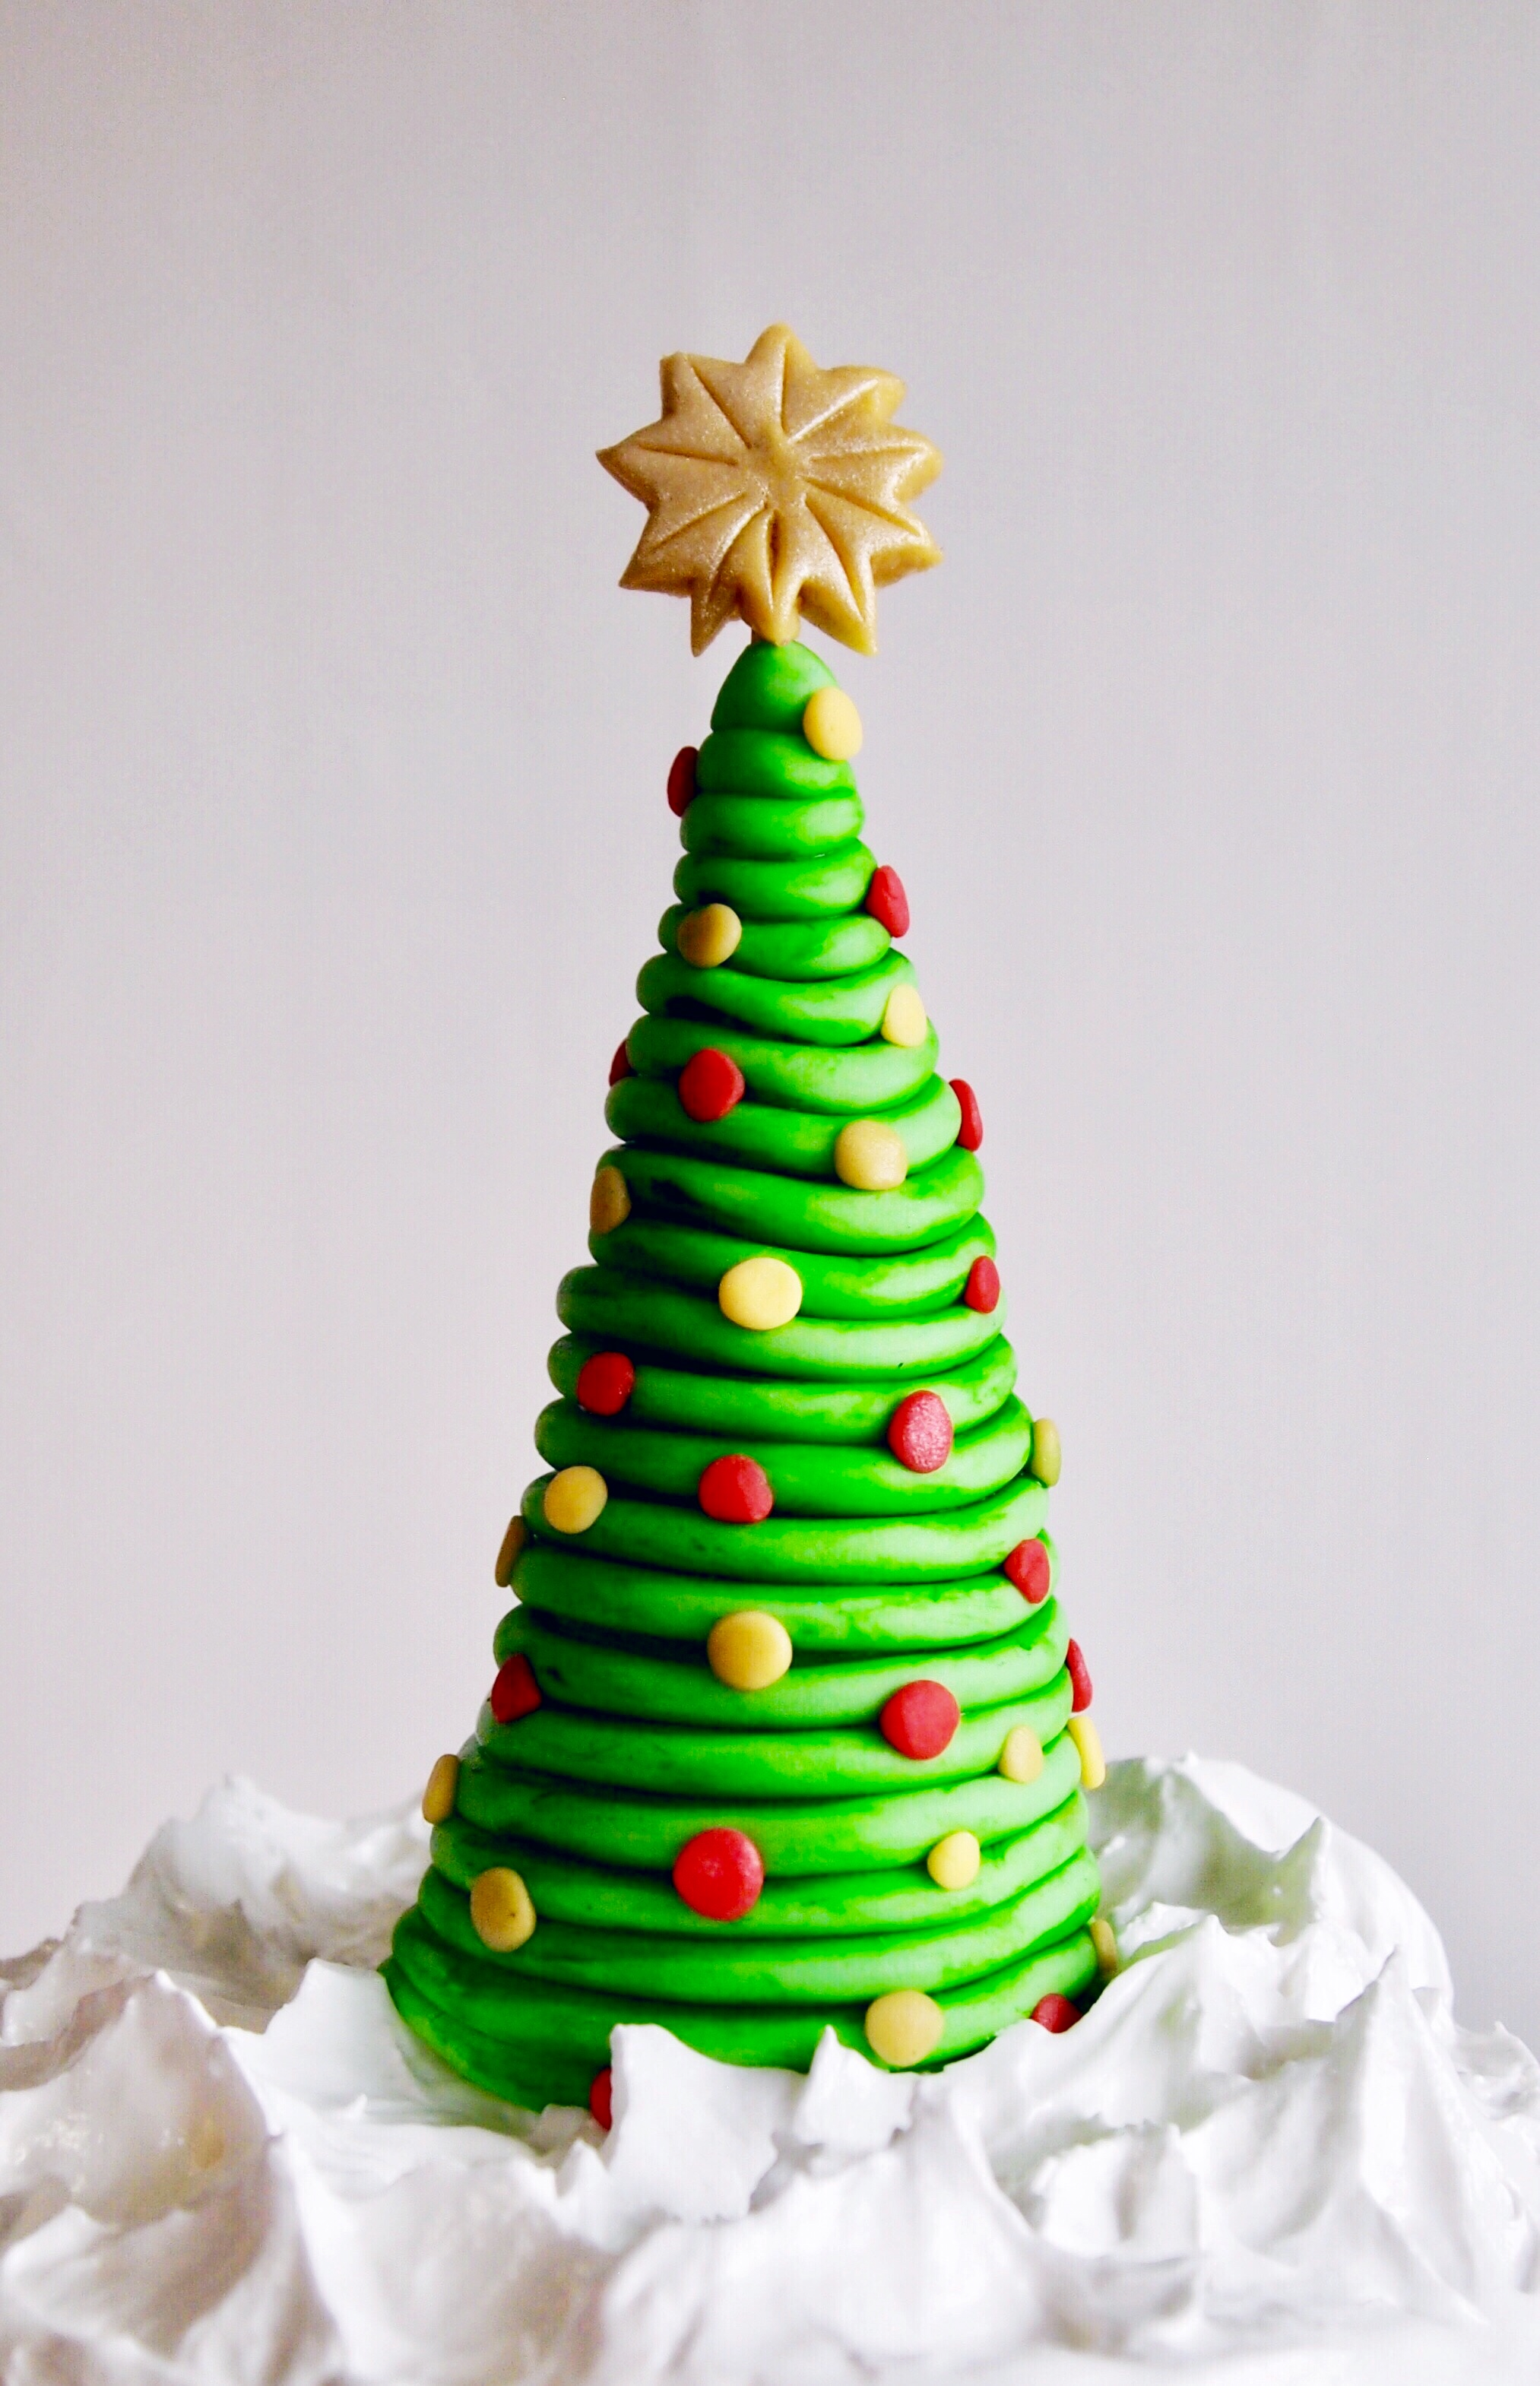 How To Make A Super Easy Christmas Tree Cake Topper